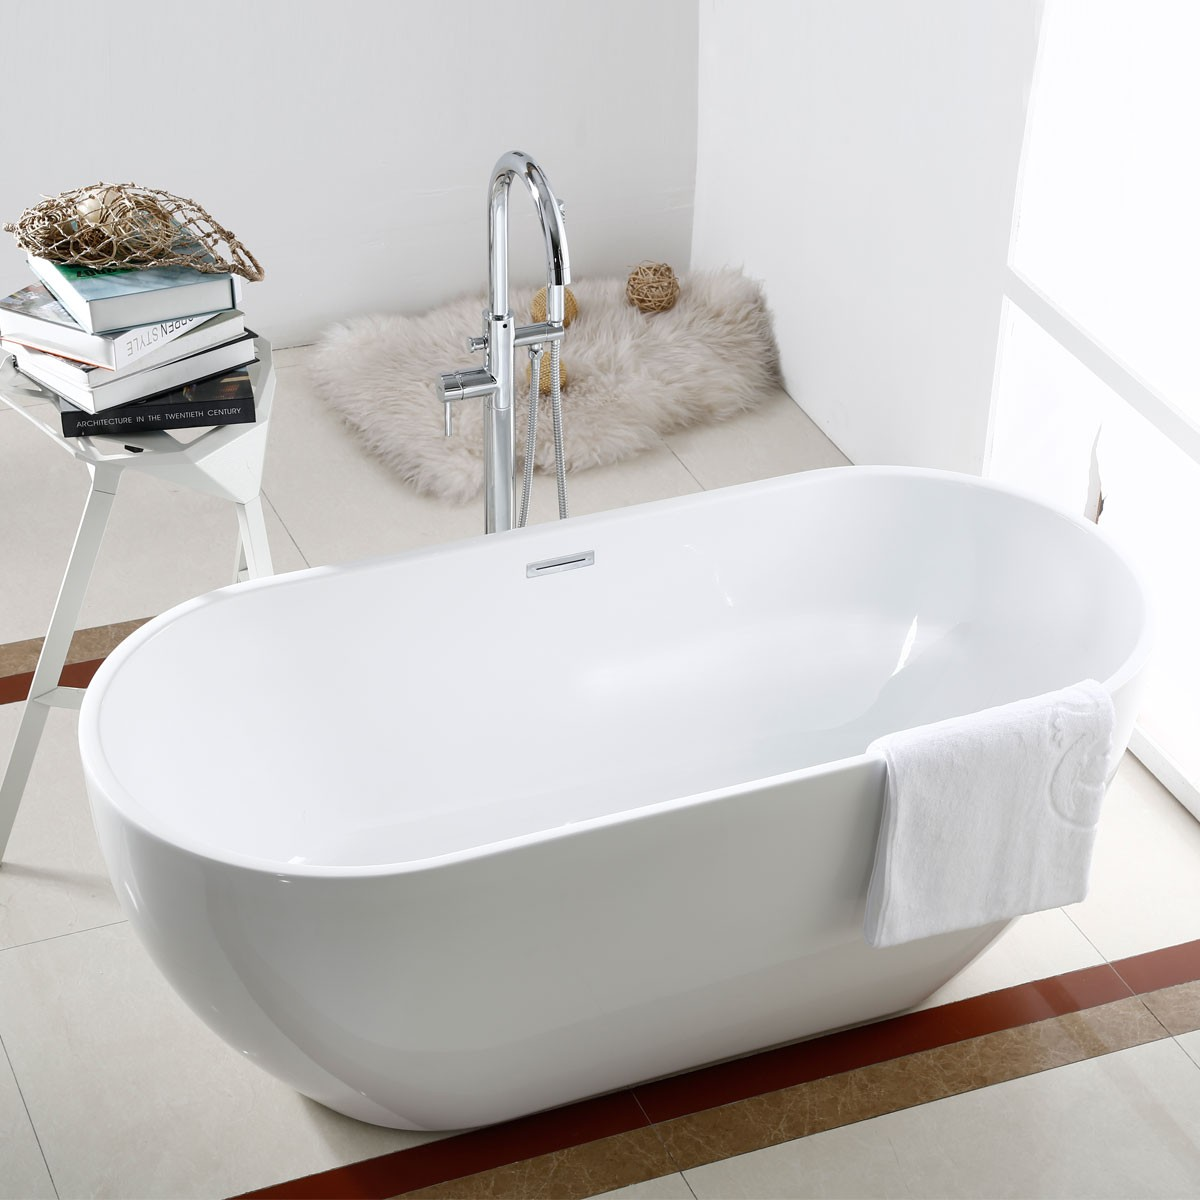 65 In White Acrylic Seamless Freestanding Bathtub (DK-AT-11672 ...